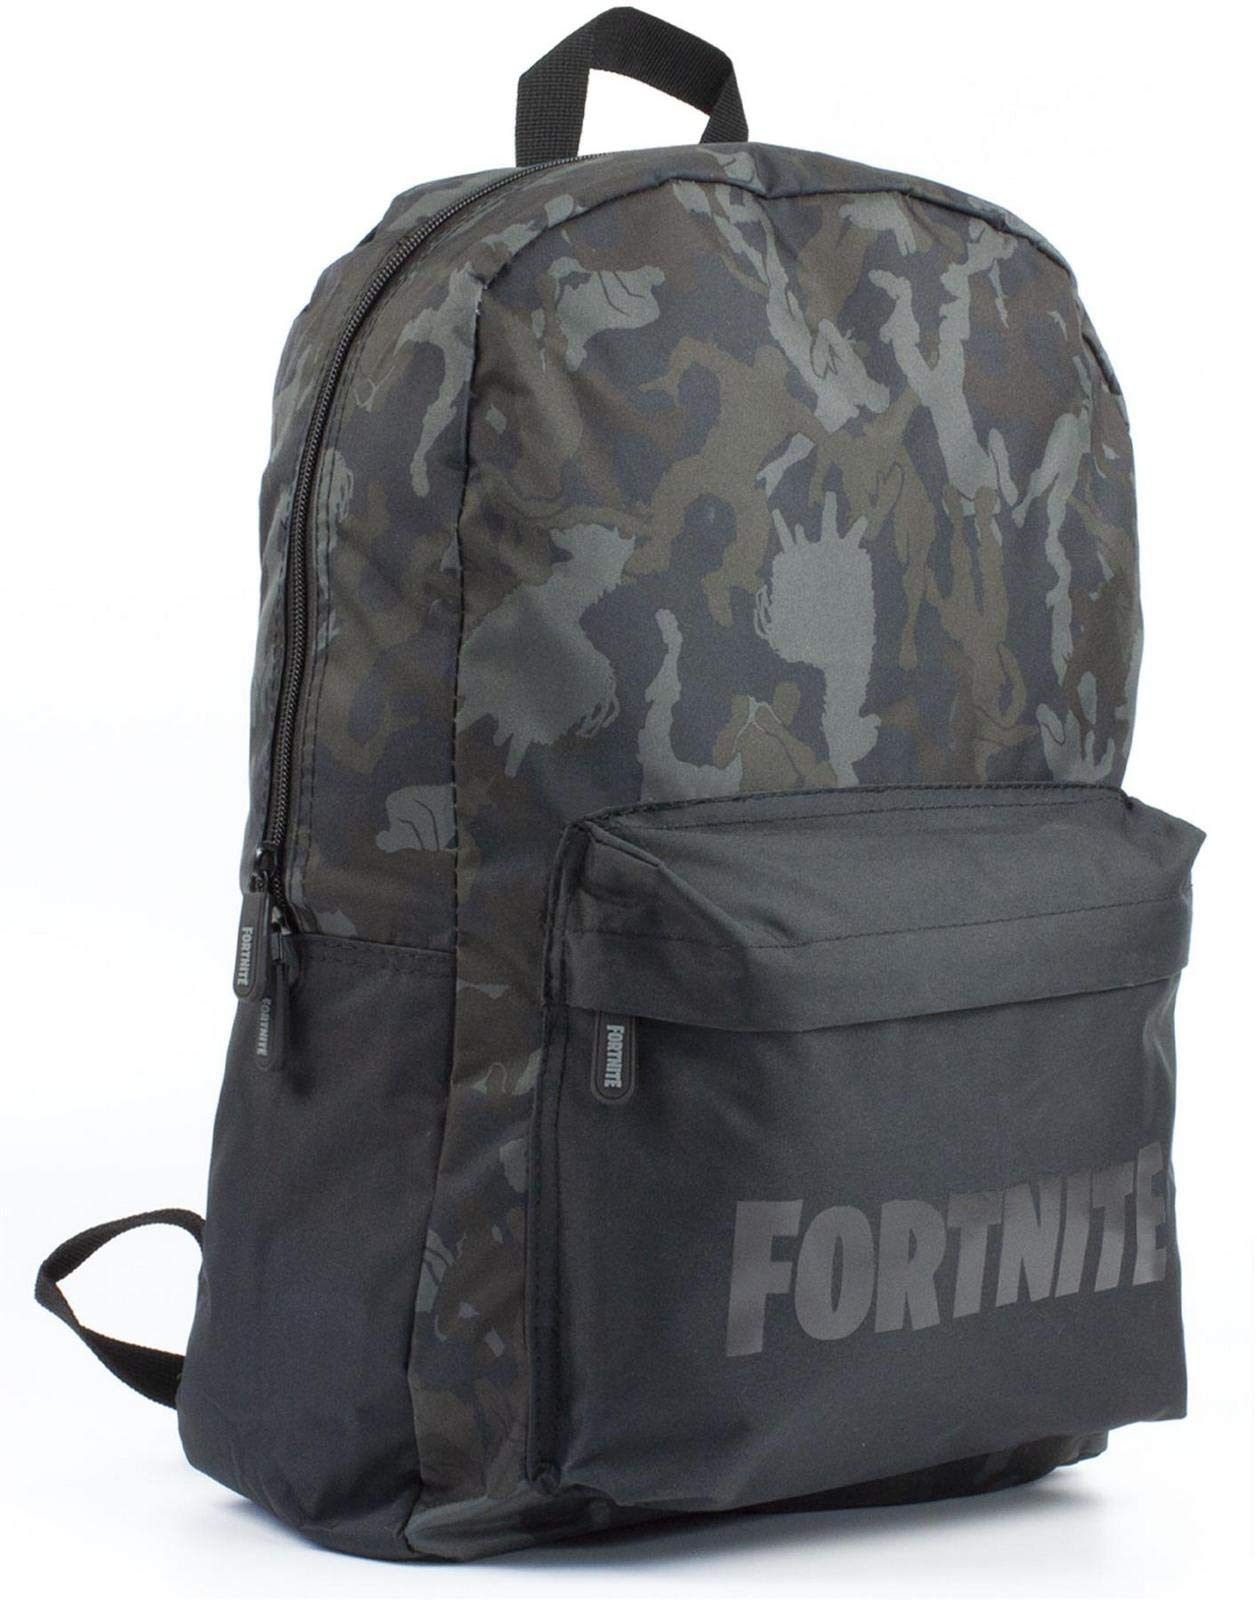 Character Emote Camo Llama All Over Print Black/Khaki Backpack Bag